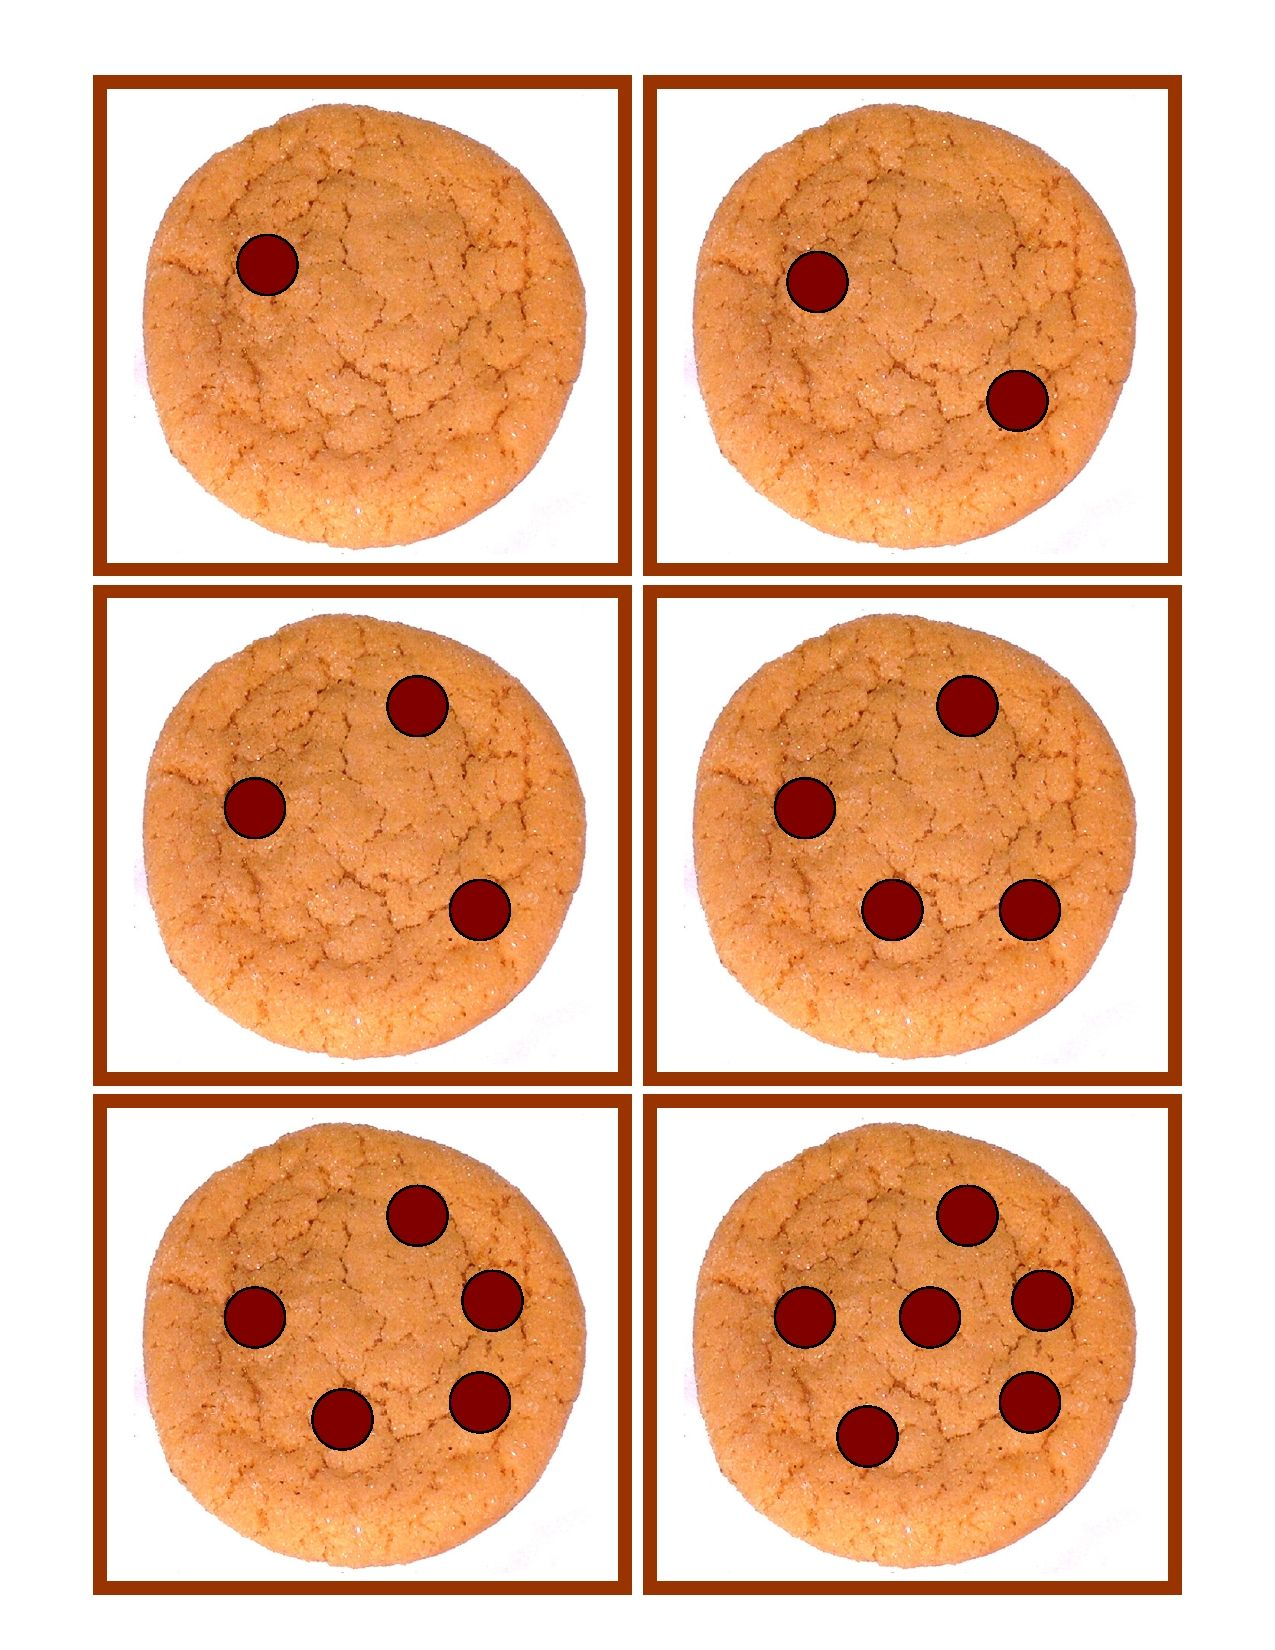 Chocolate Chip Cookie Counting Game Develops Basic